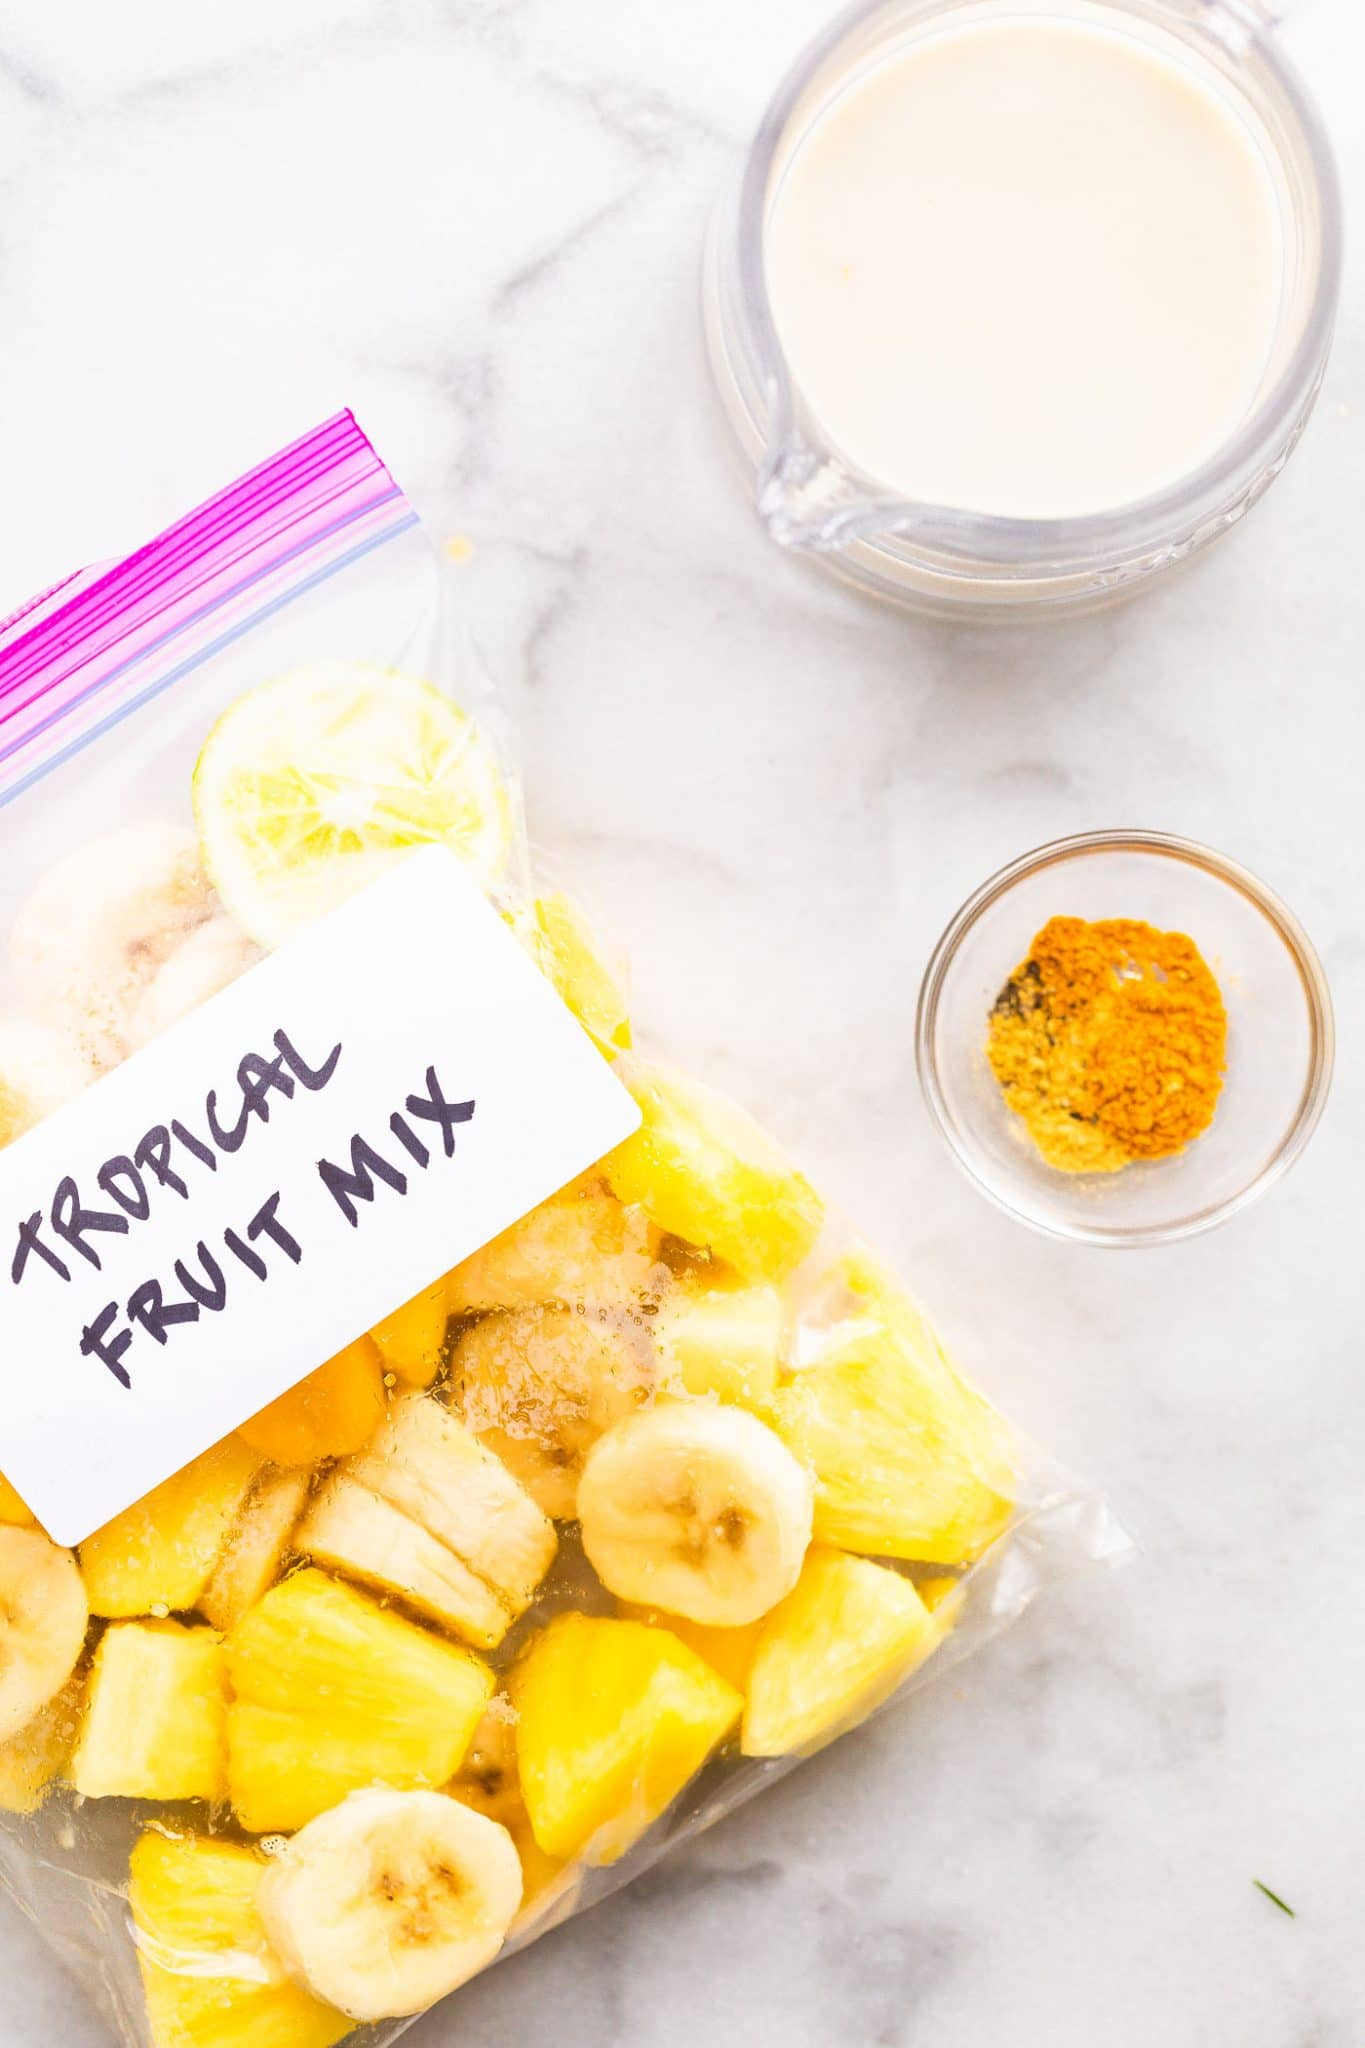 Overhead image of frozen fresh fruit in a ziploc bag next to spices and non-dairy milk for a turmeric smoothie.